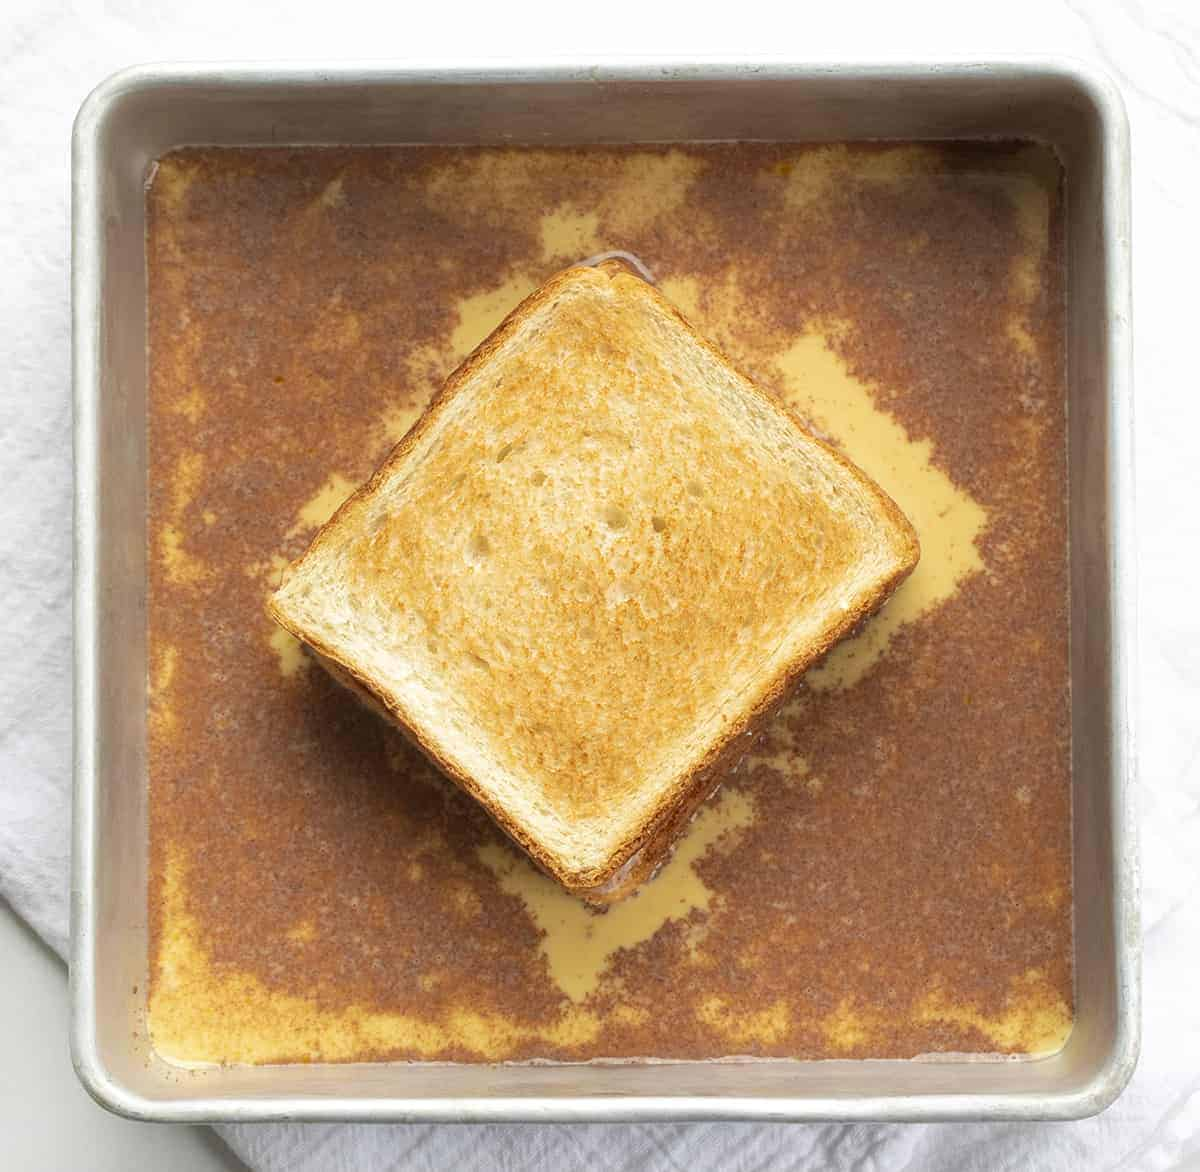 Adding Stuffed French Toast to Egg Mixture